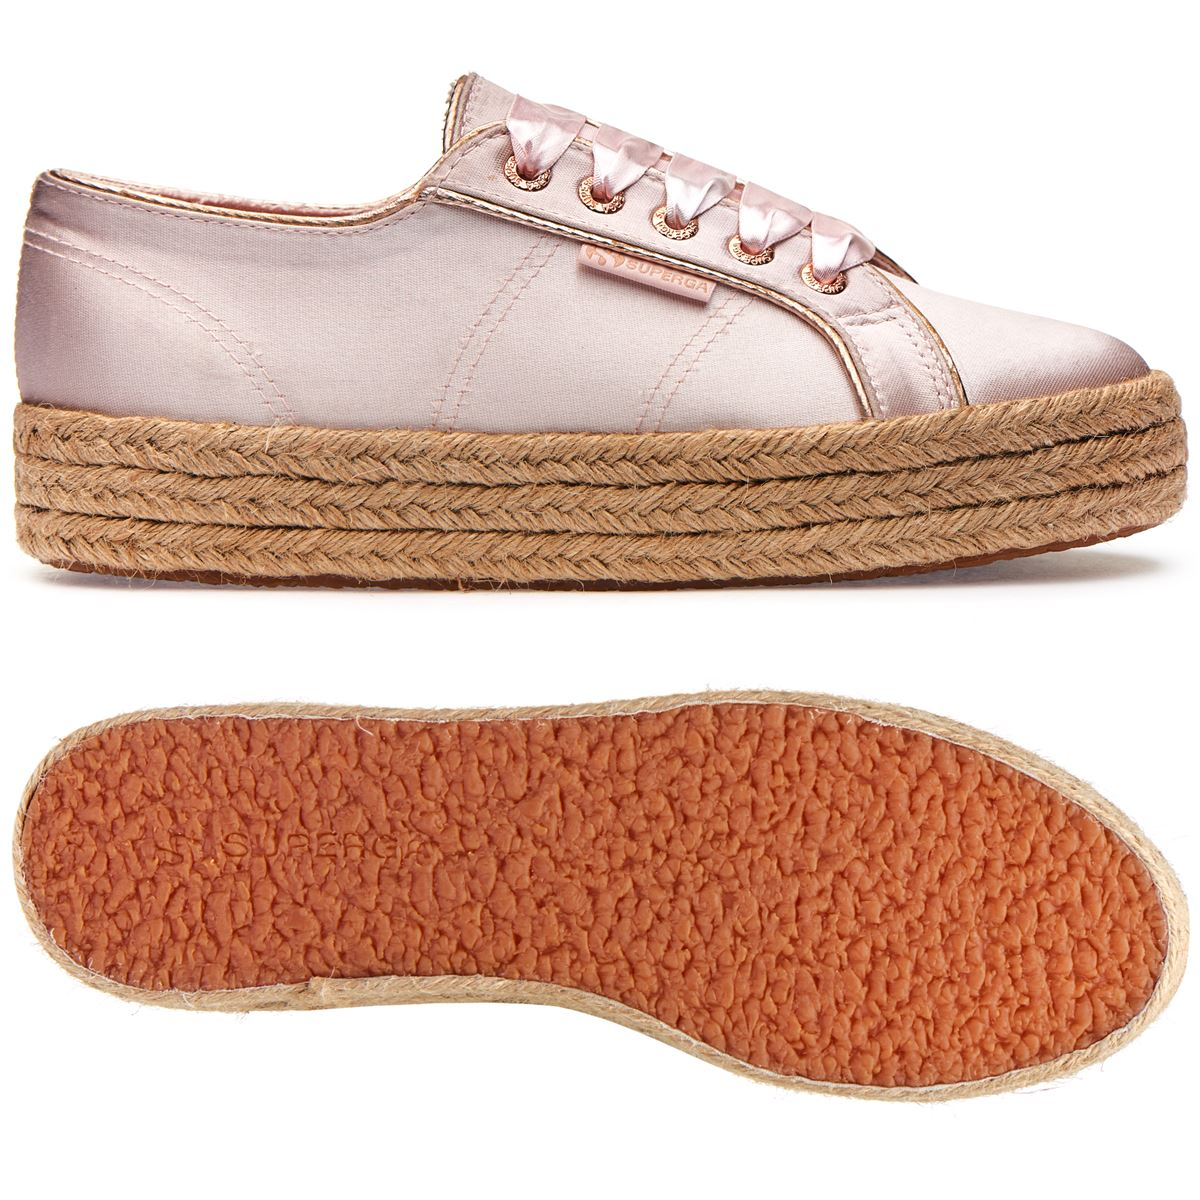 Superga Satincotmetropew Rose 2730